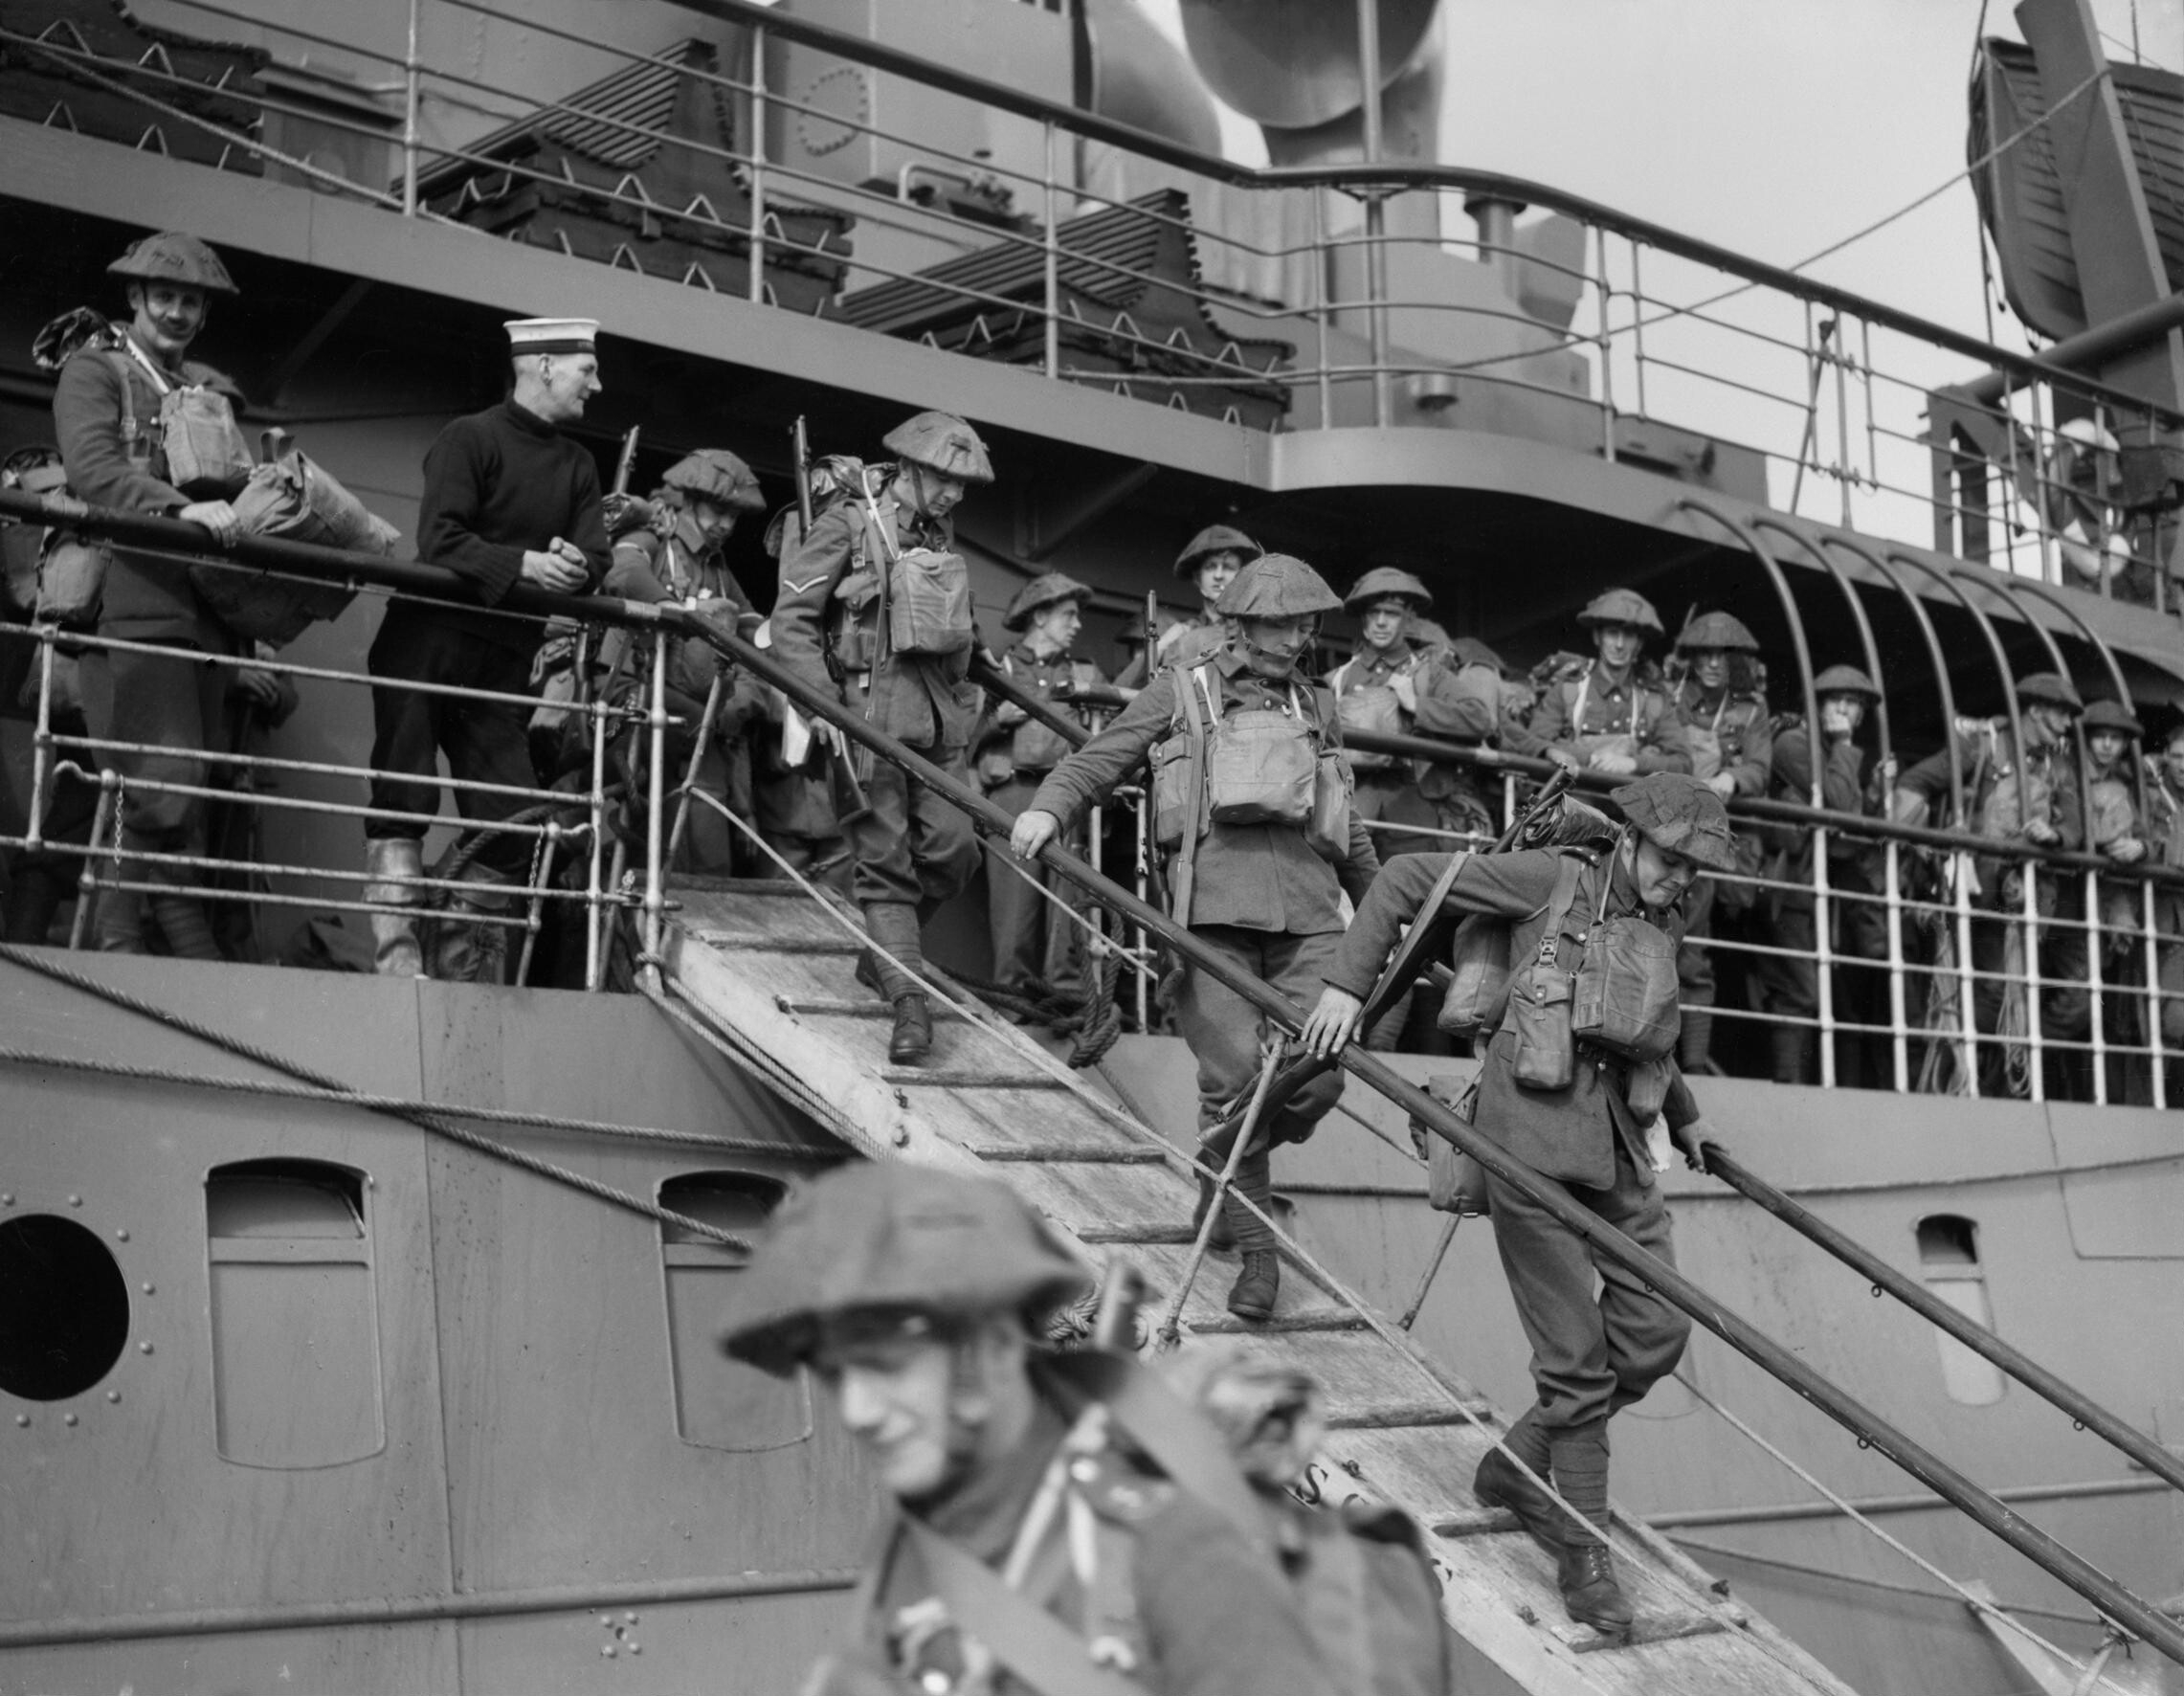 Men of the 2nd Royal Inniskilling Fusiliers disembarking at Cherbourg